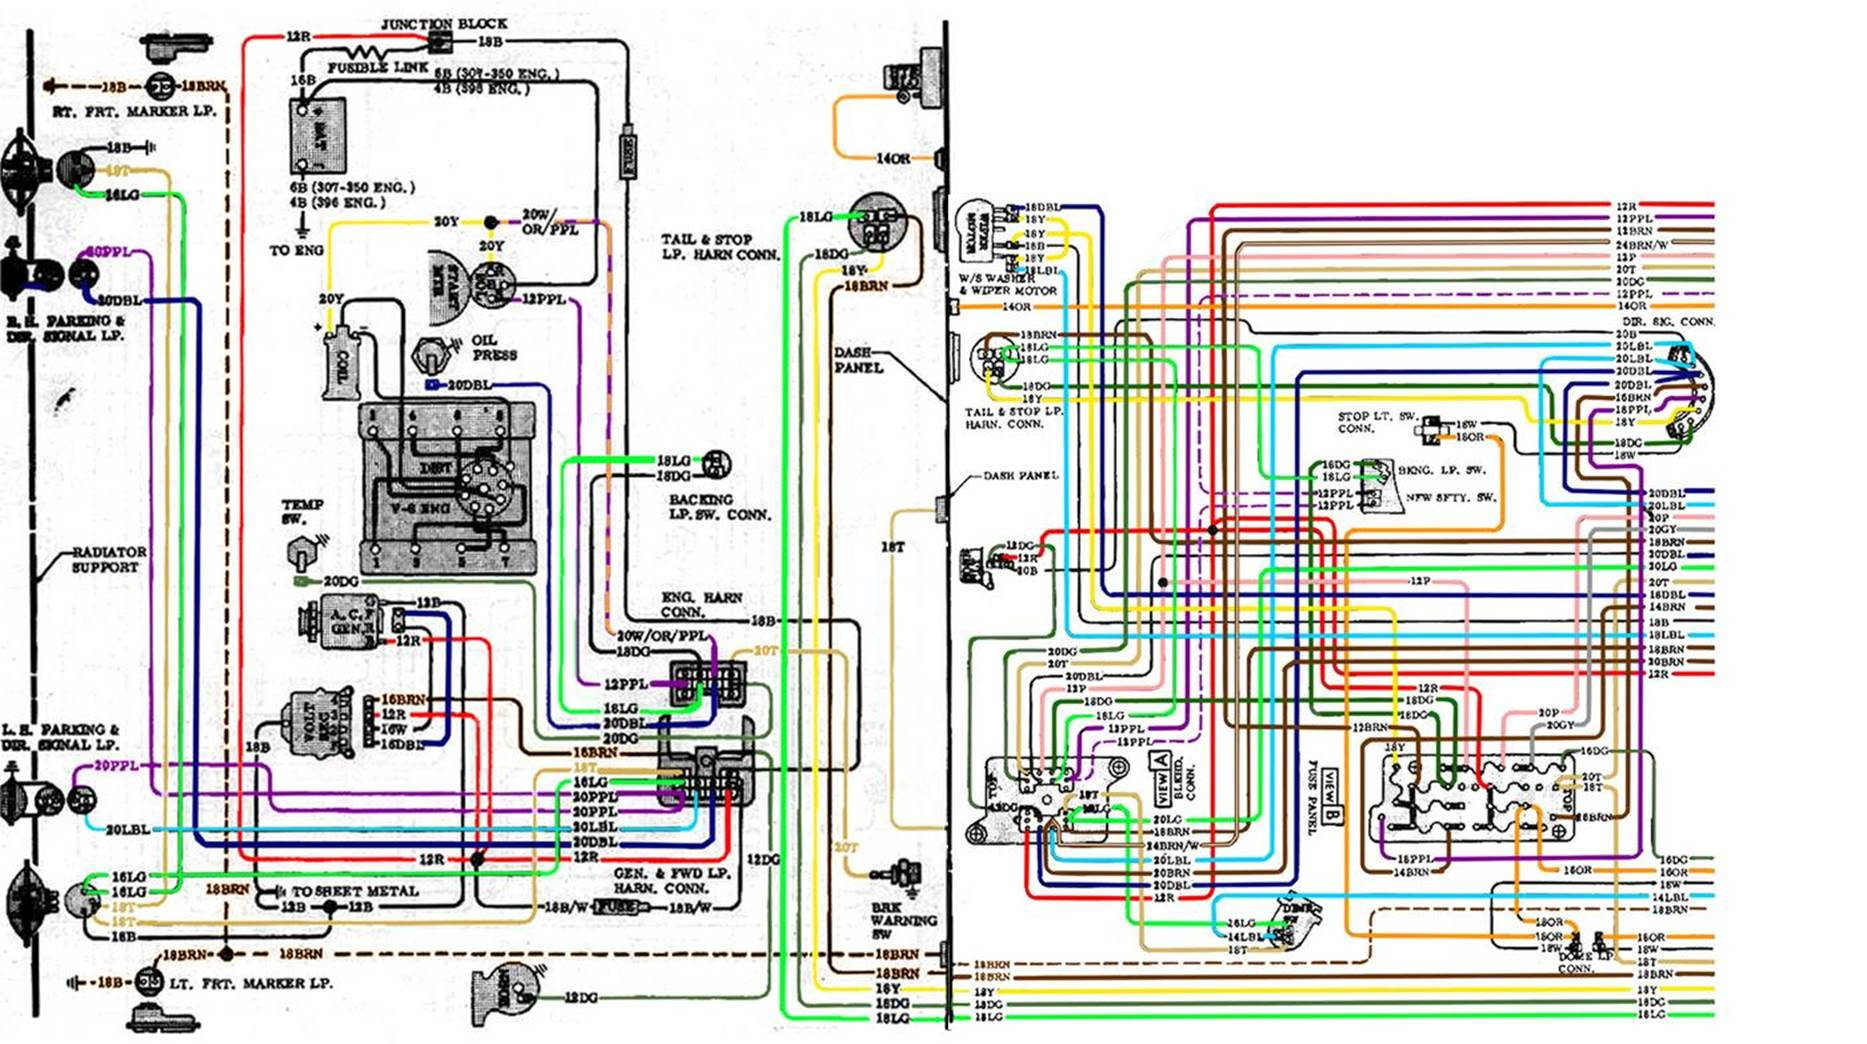 image002 72 c10 wiring diagram chevy truck wiring diagram \u2022 wiring diagrams 1969 mustang wiring diagram at honlapkeszites.co